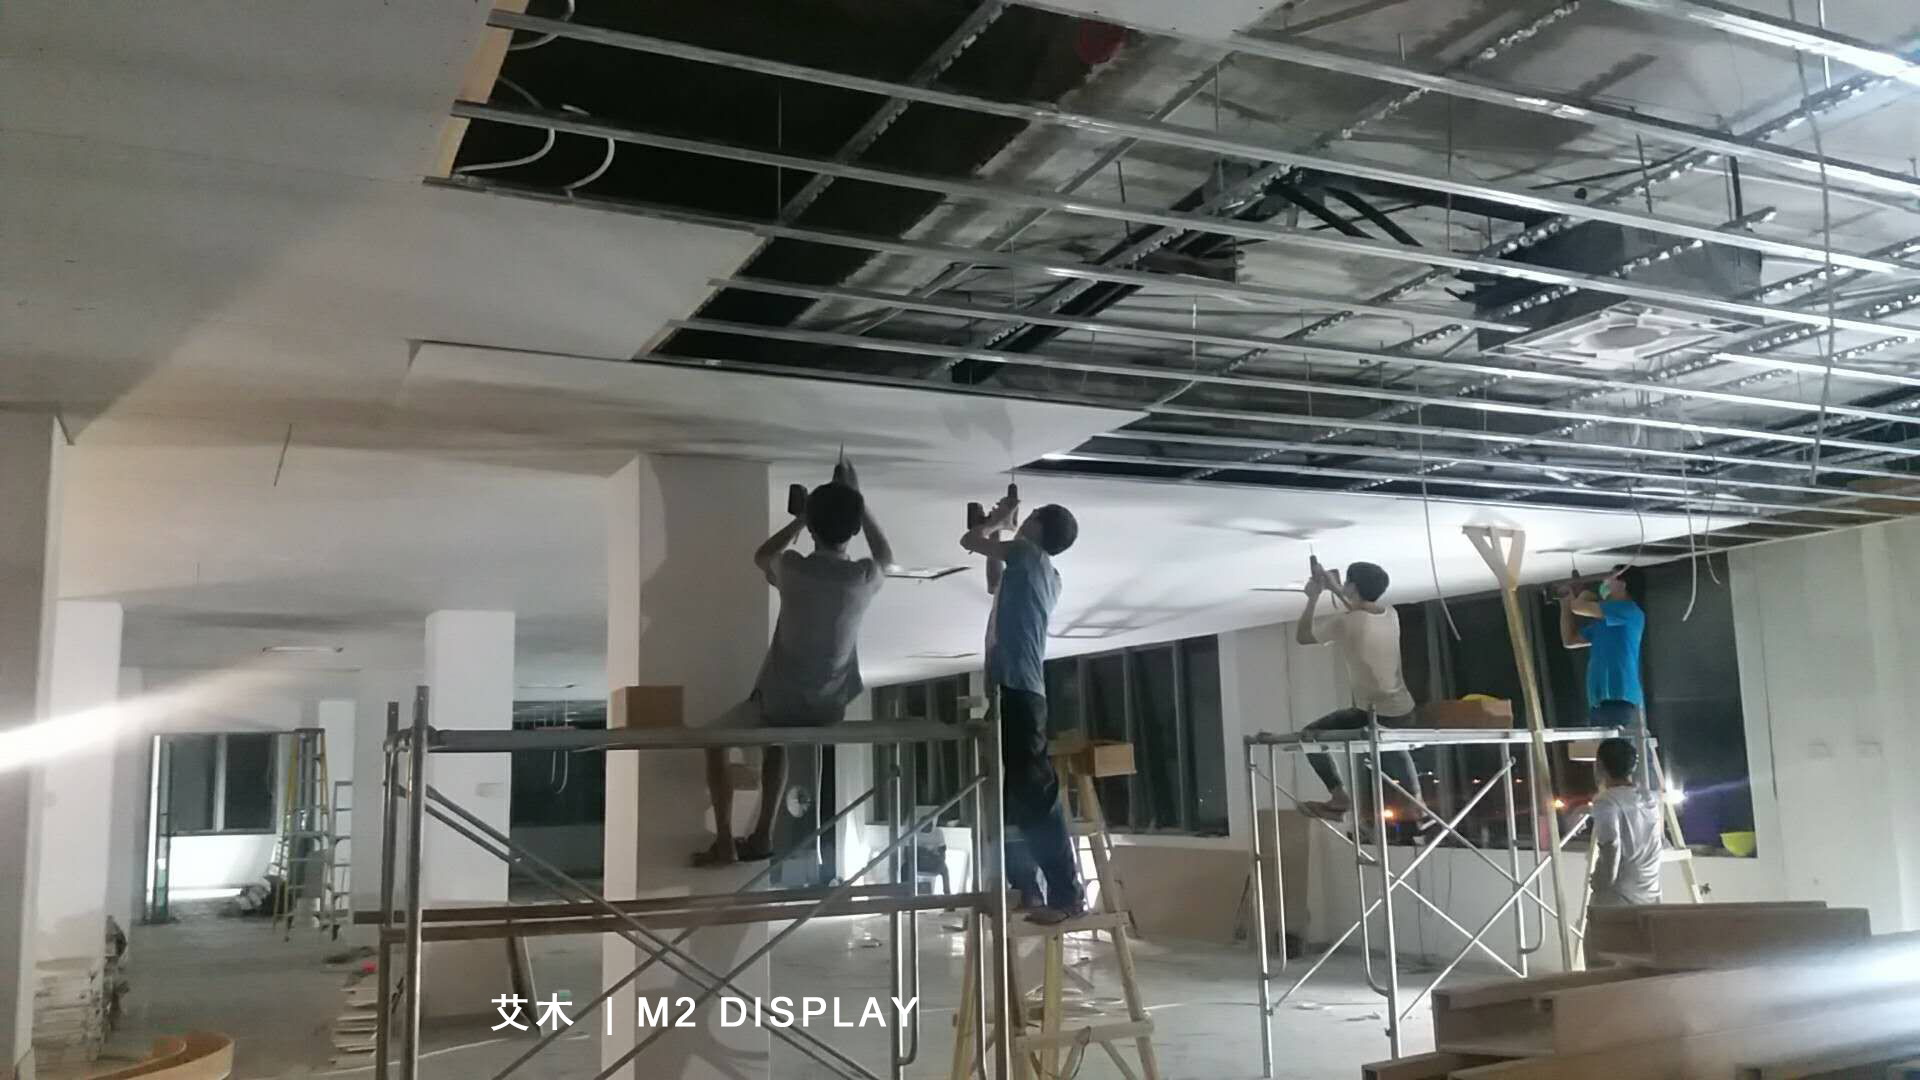 Nigeria Beauty department store Renovation project